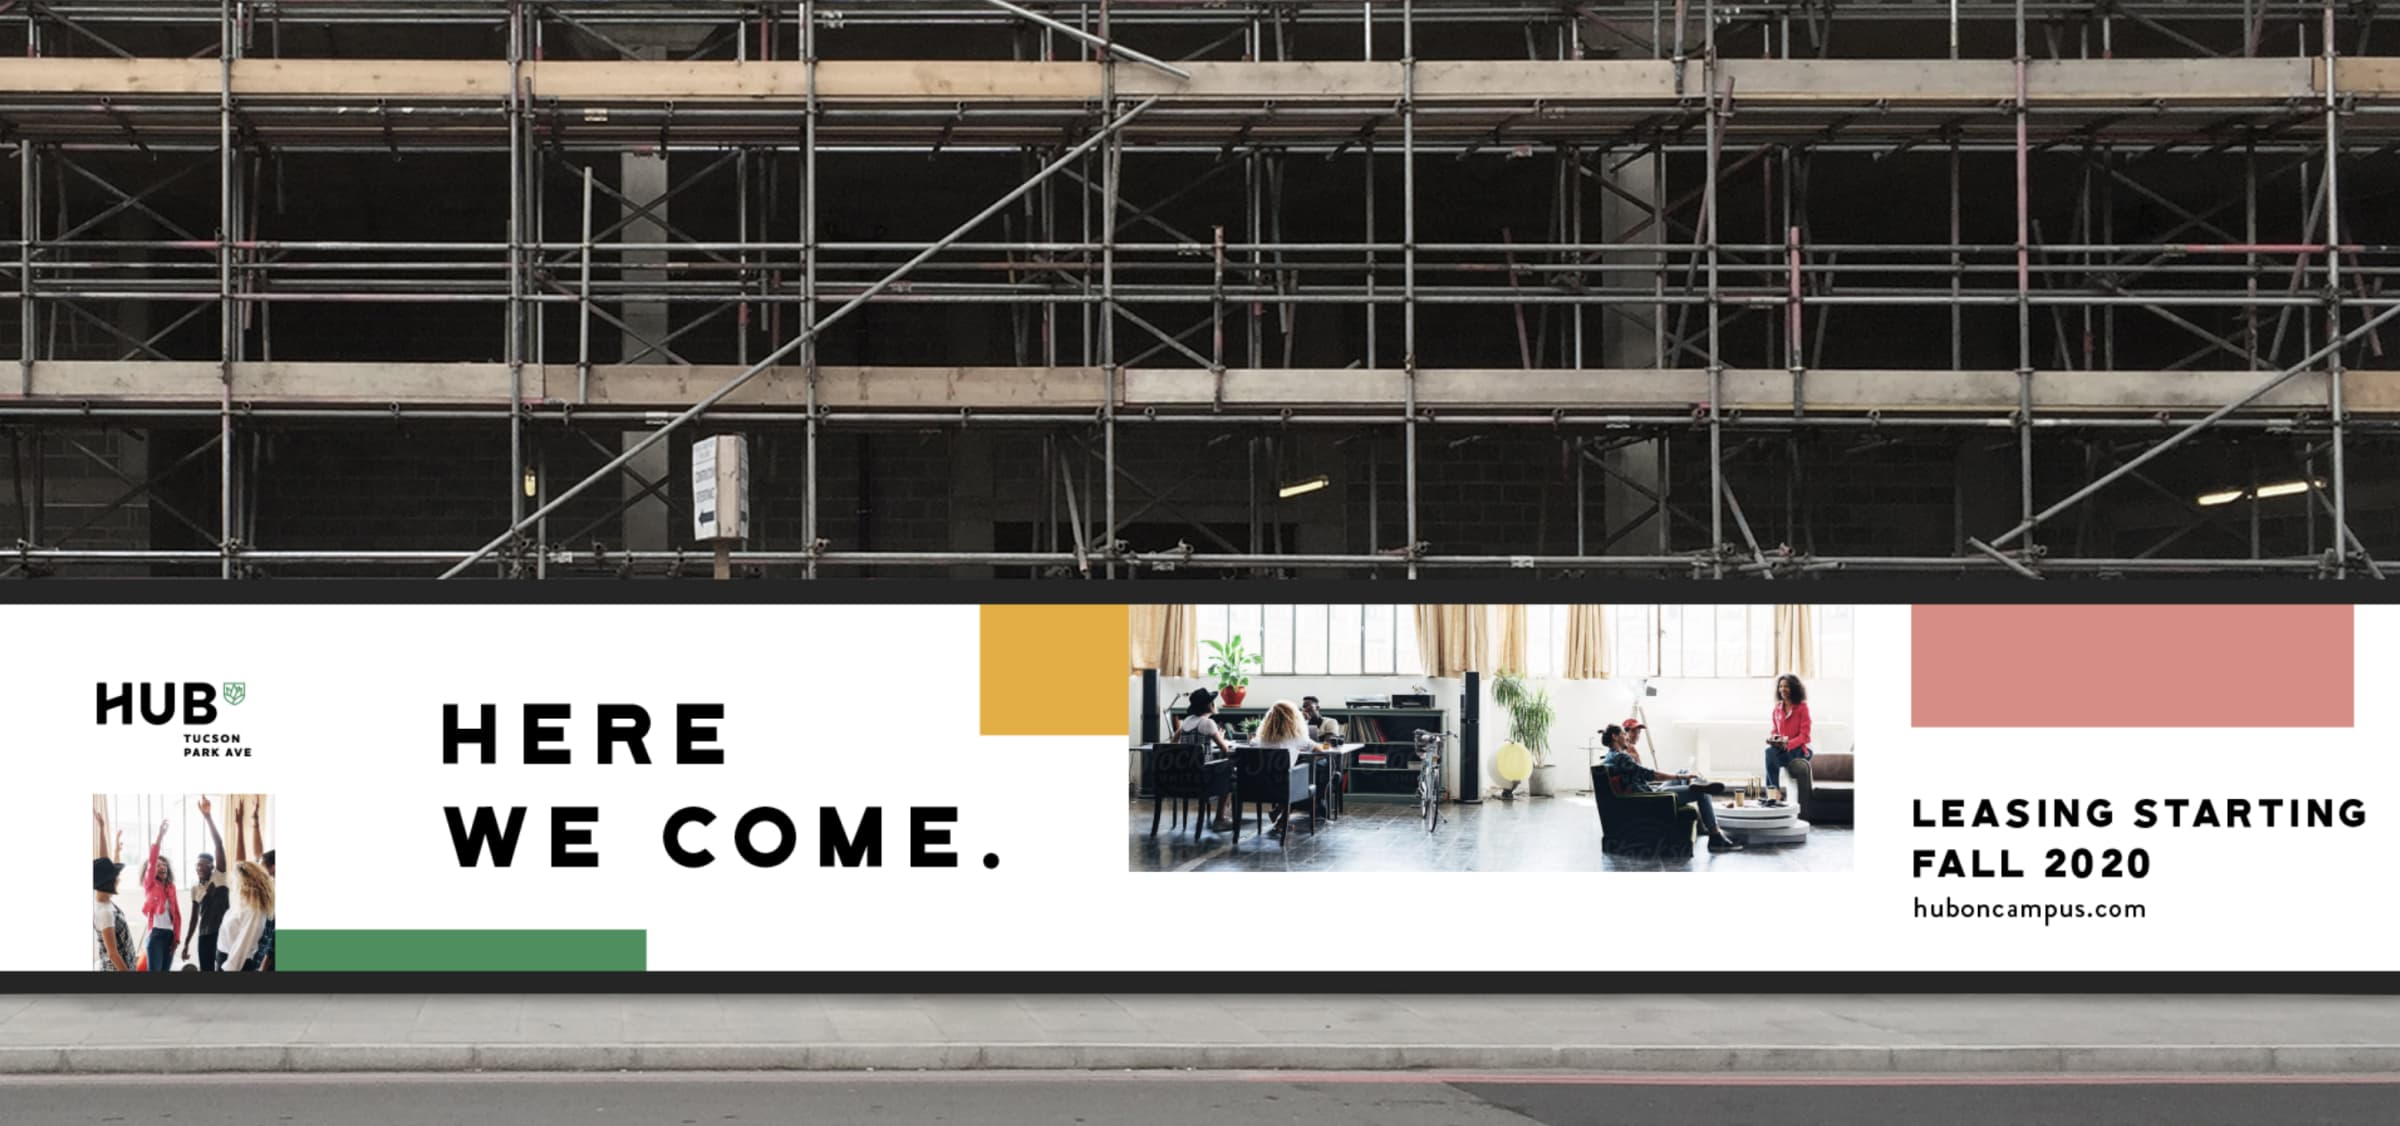 An image of a large Hub advertising poster wrapping around the scaffolding of a construction site.